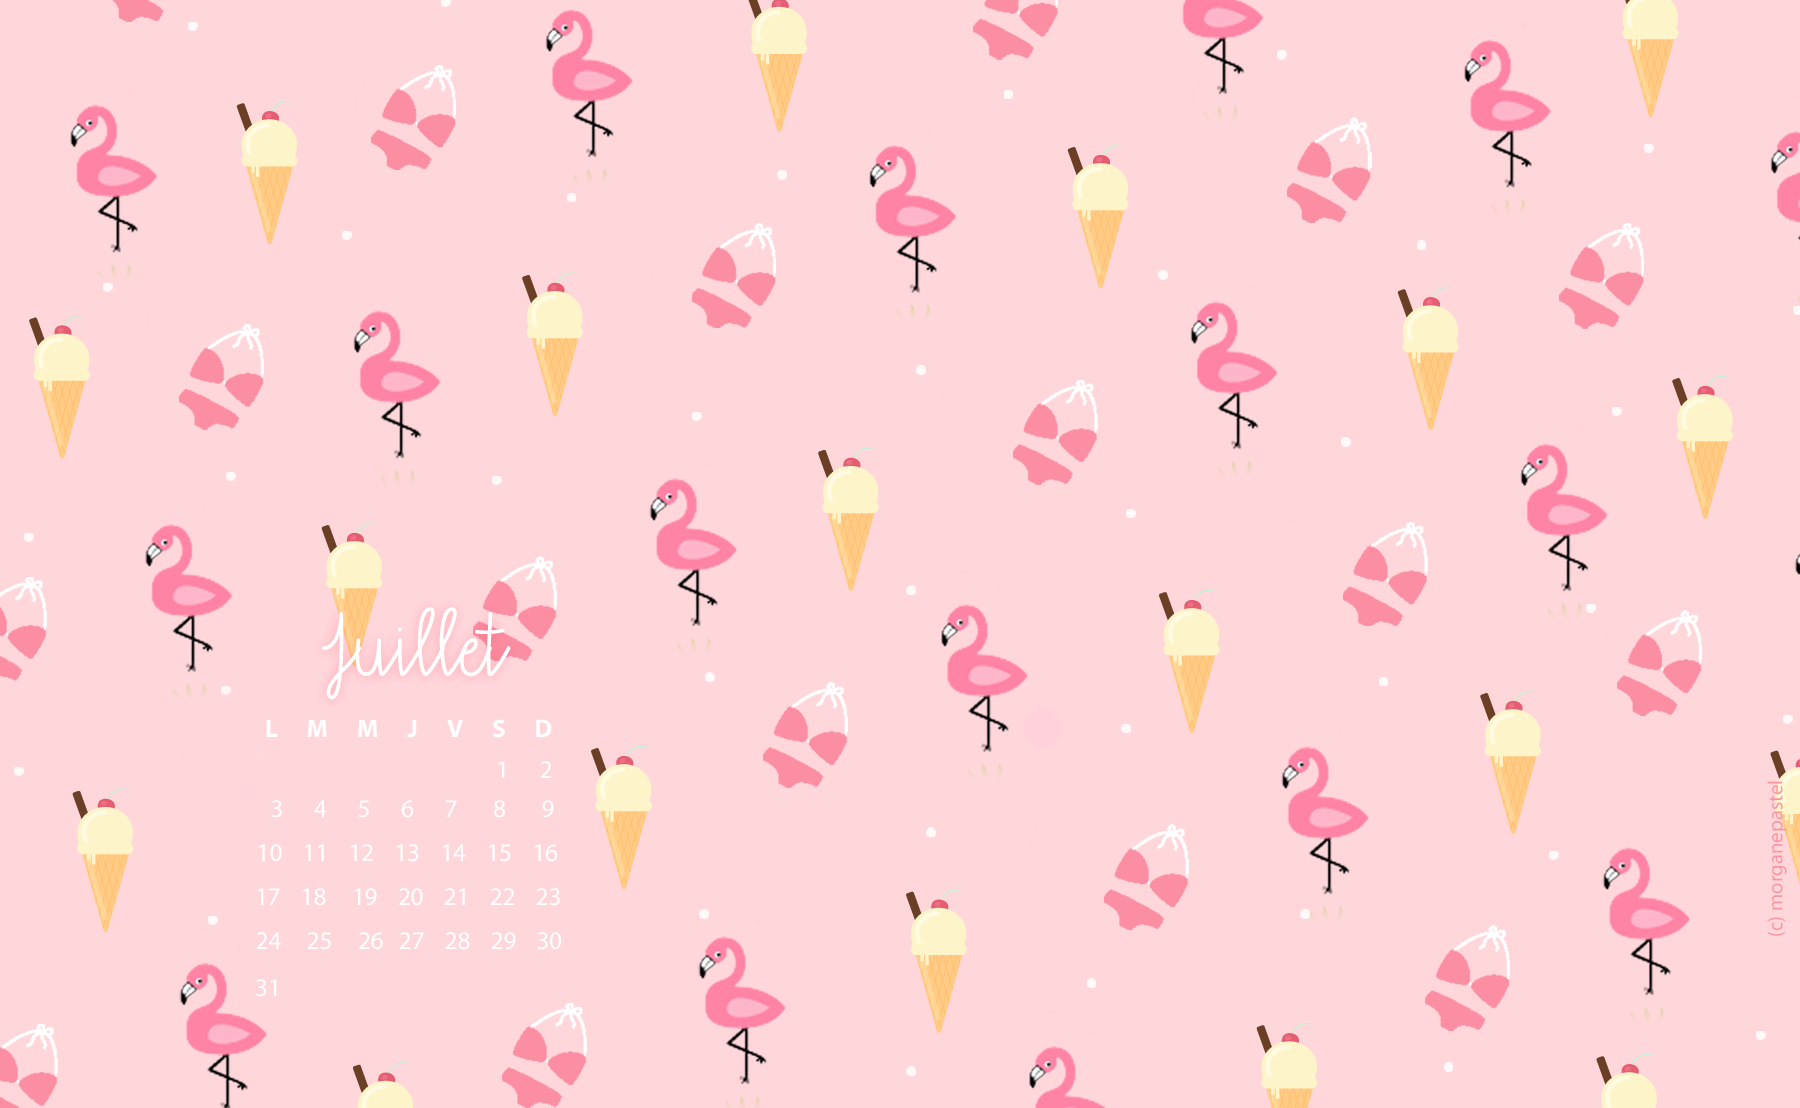 girly wallpaper for iphone